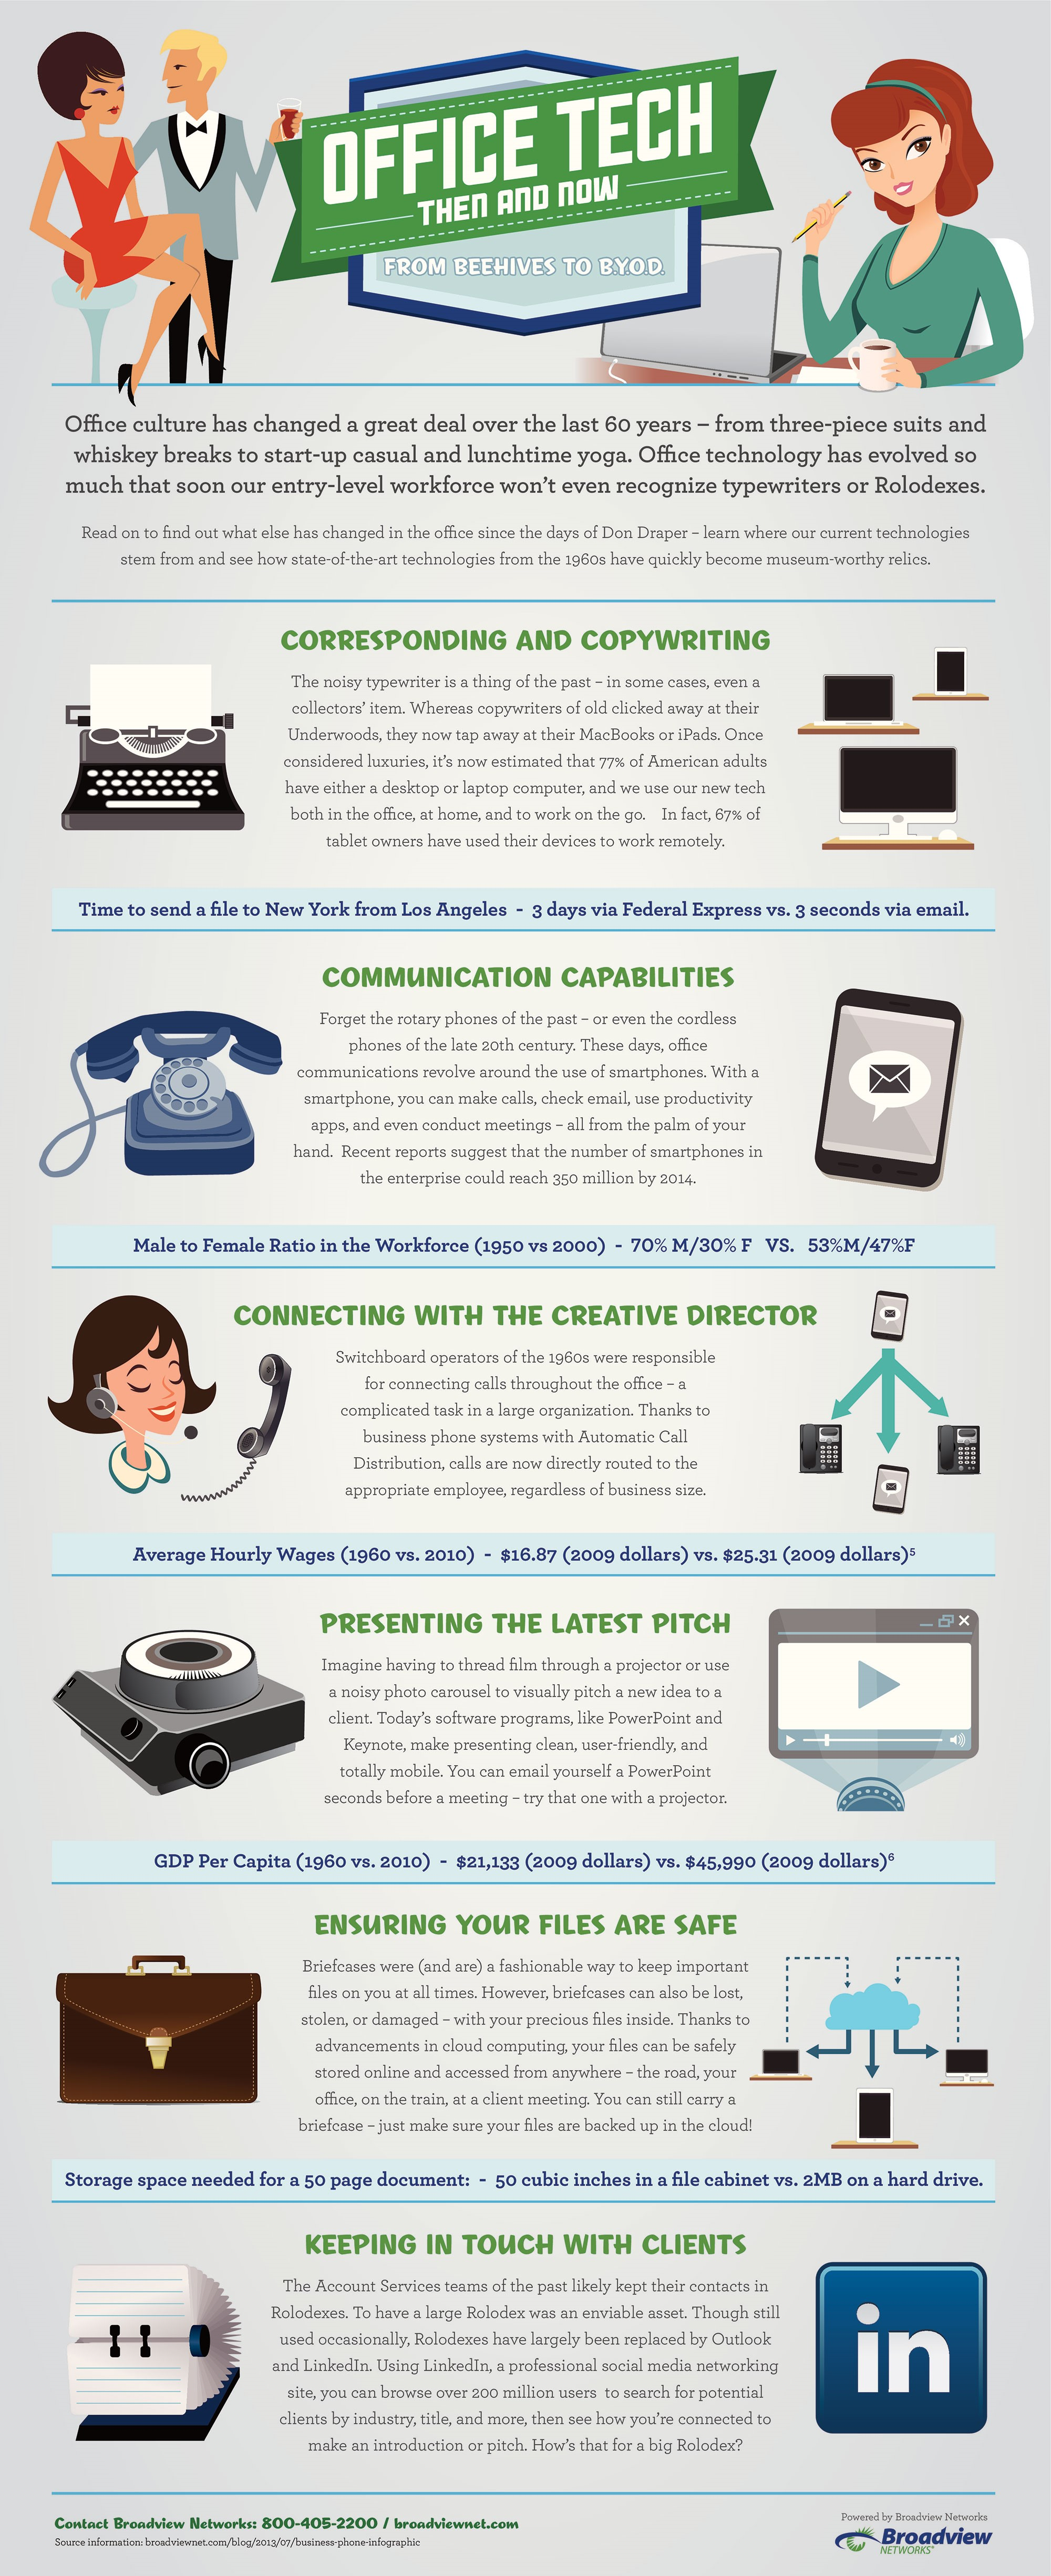 Office Tech: Then and Now